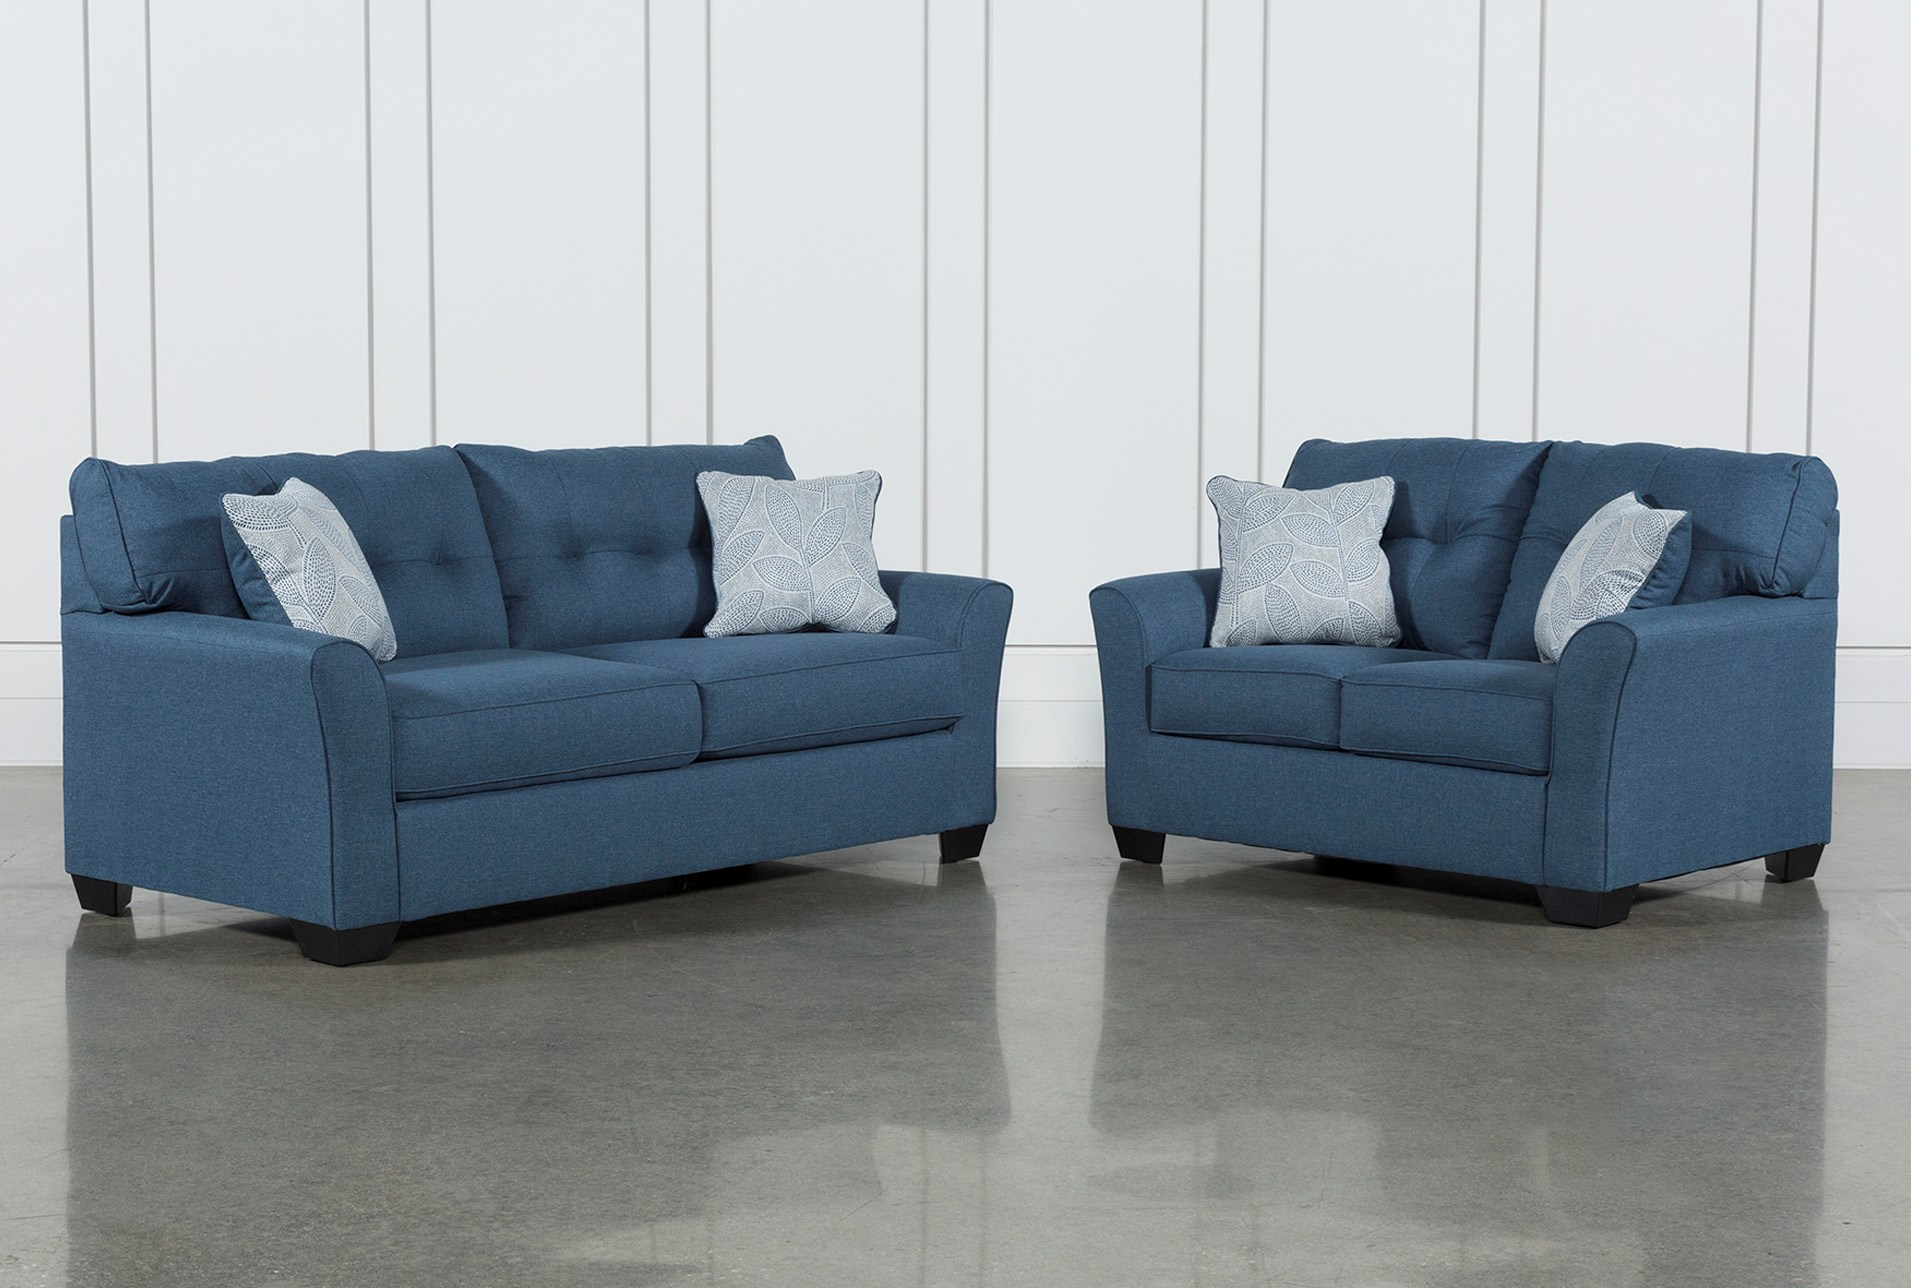 Jacoby denim 2 piece living room set qty 1 has been successfully added to your cart